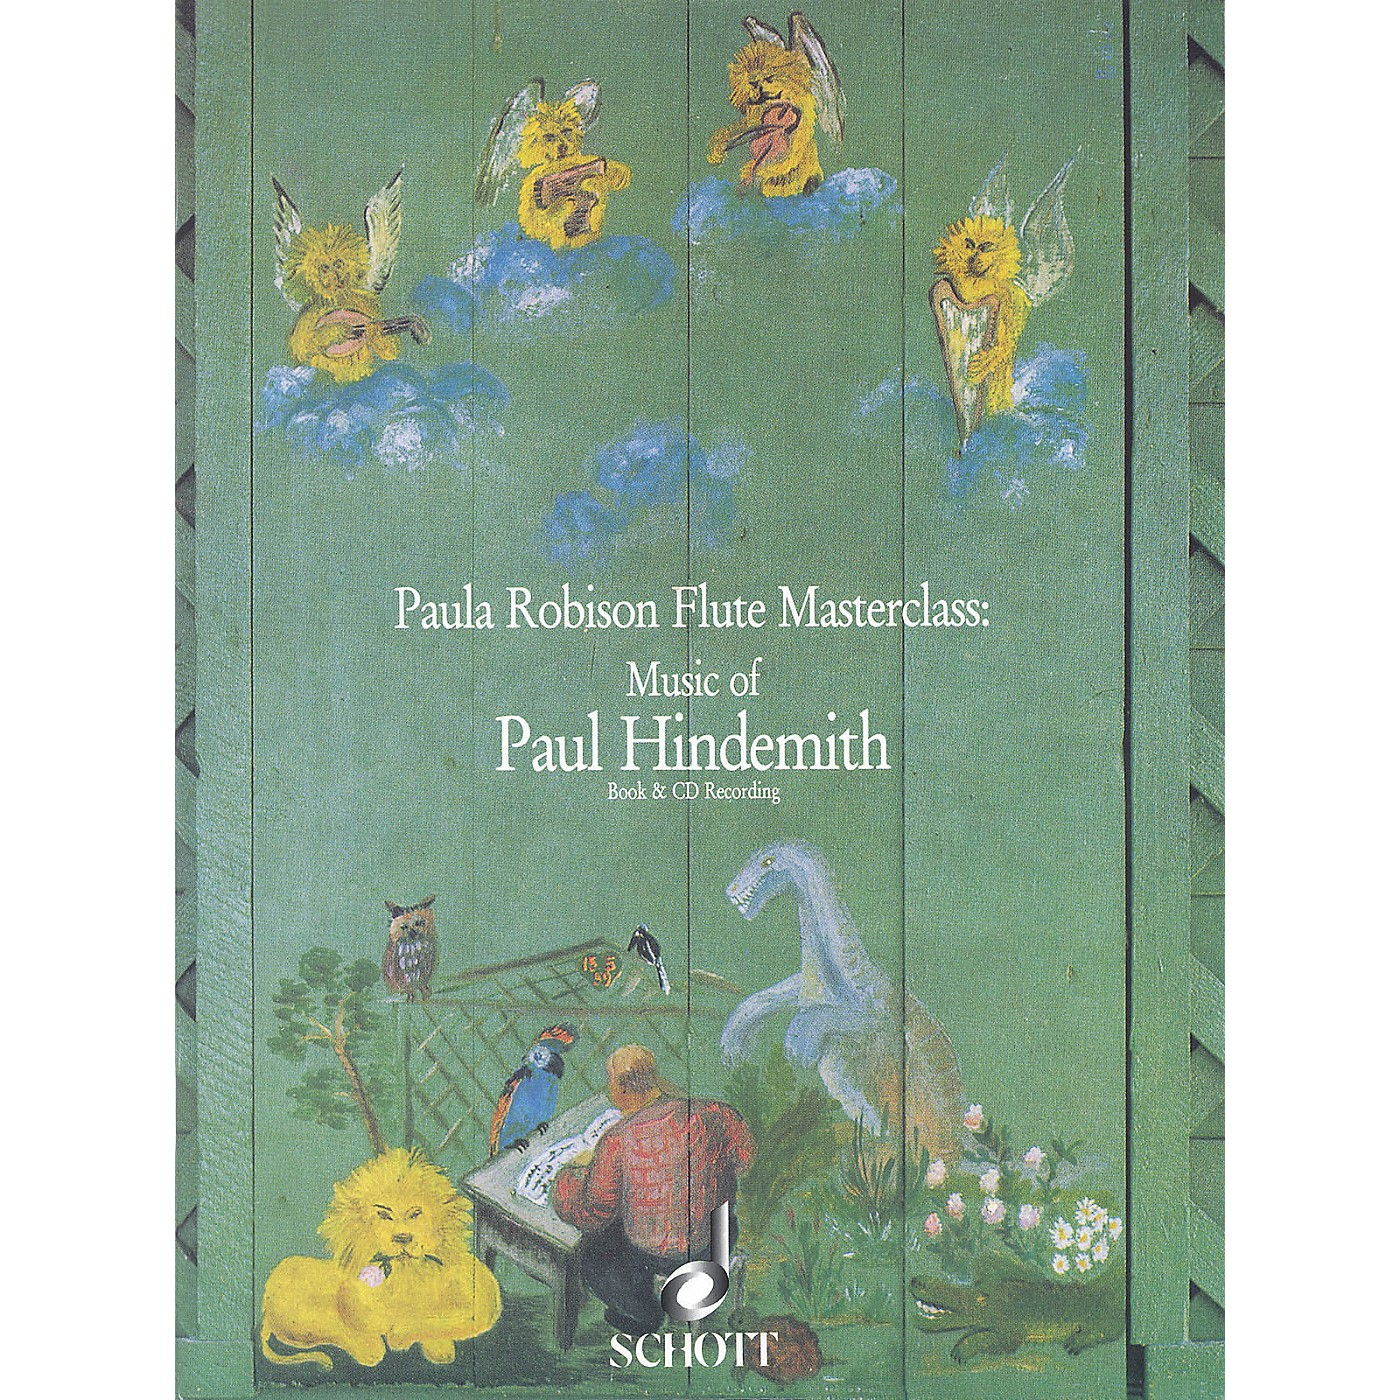 Schott Music of Paul Hindemith (Paula Robison Flute Masterclass) Schott Series Softcover with CD thumbnail